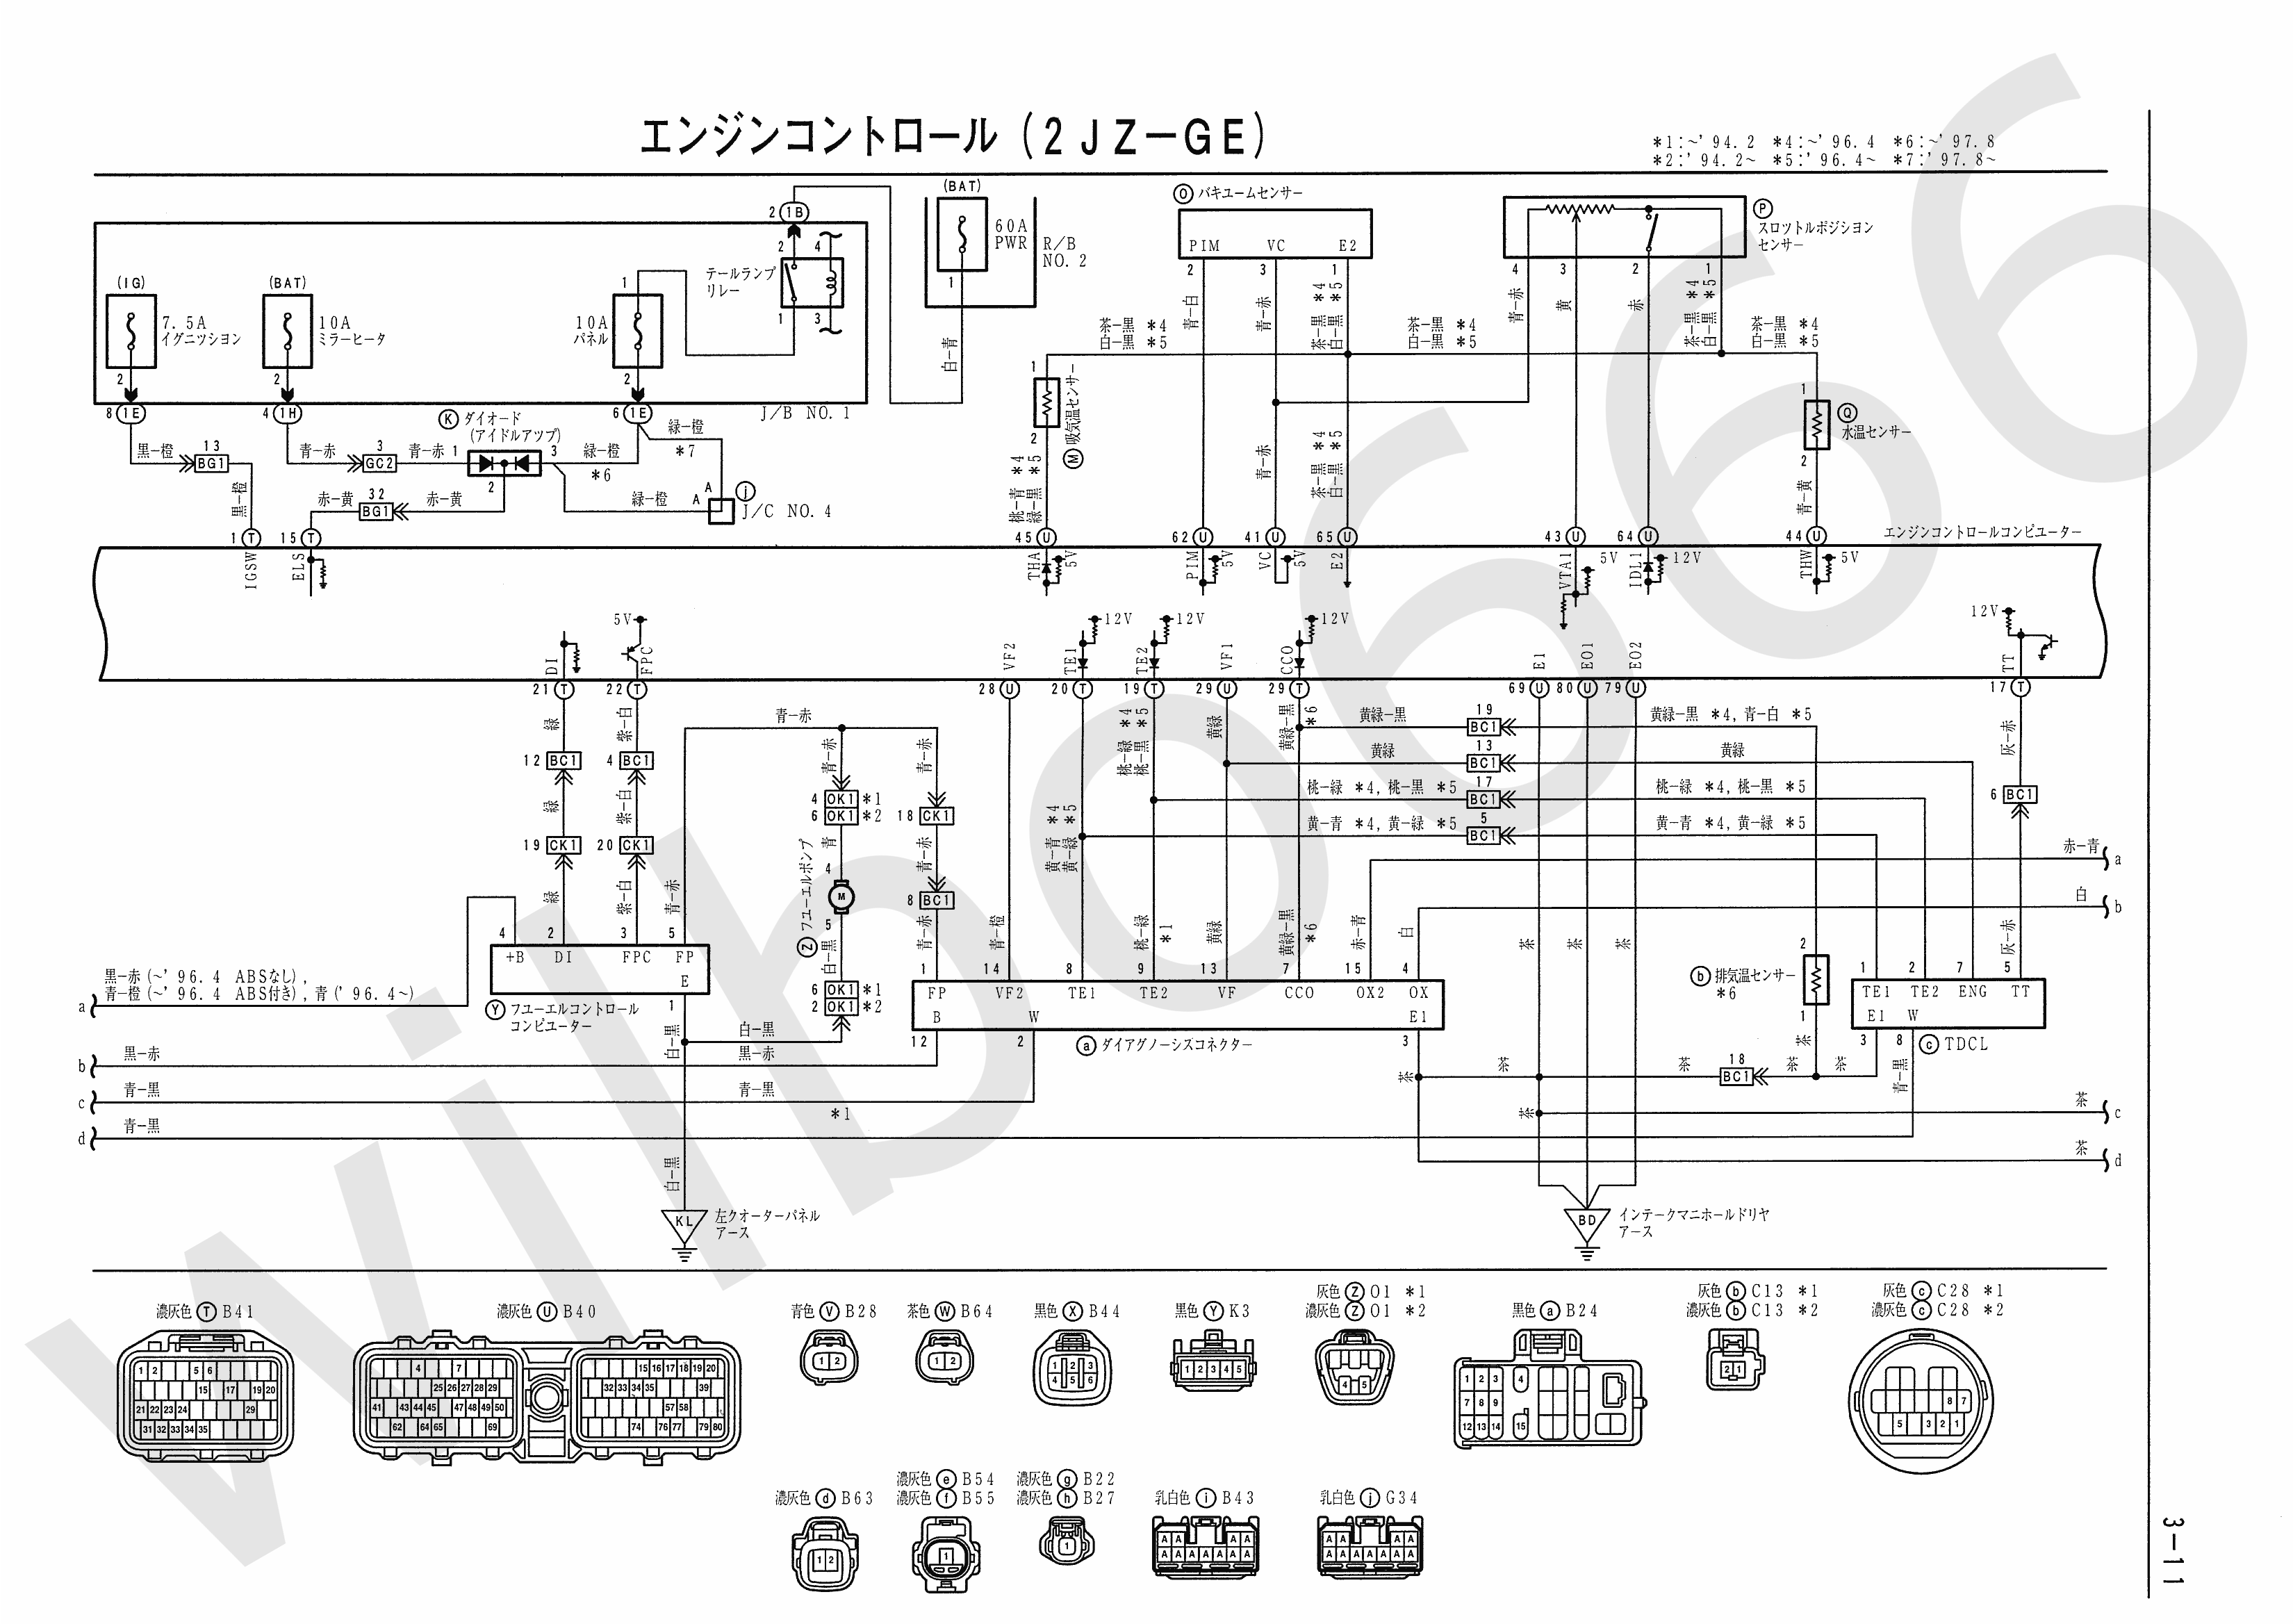 JZA80 Electrical Wiring Diagram 6742505 3 11 wilbo666 2jz ge jza80 supra engine wiring 2jz wiring diagram at gsmportal.co